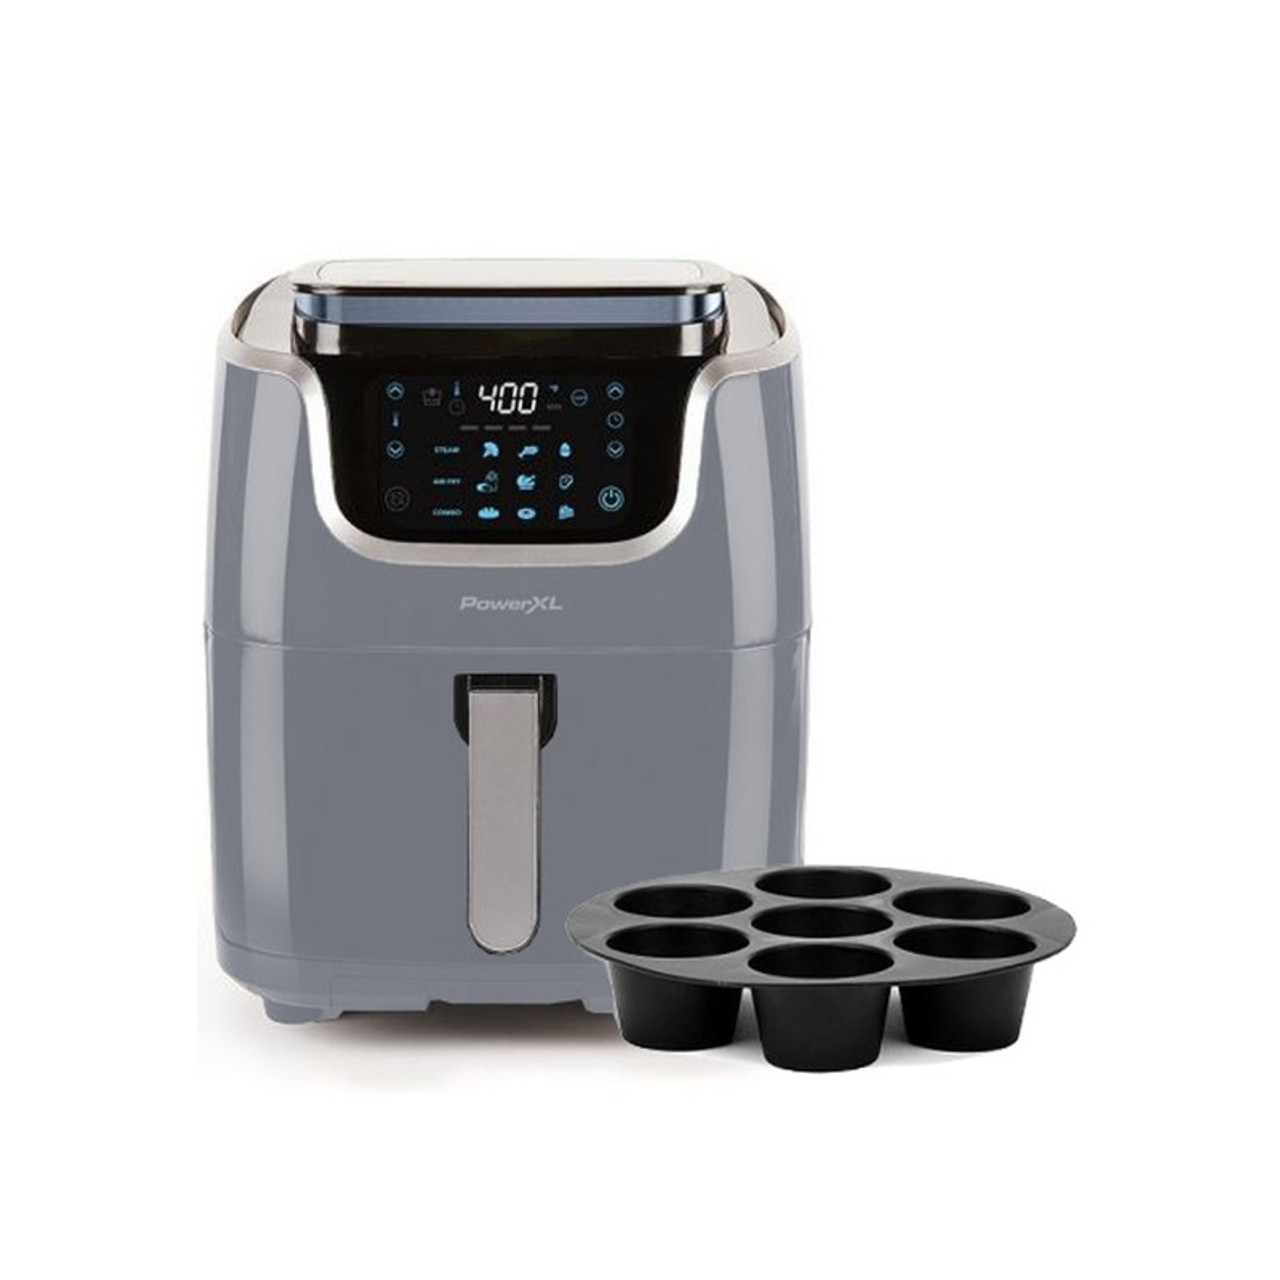 PowerXL 7qt 10-in-1 1700W Air Fryer Steamer with Muffin Pan